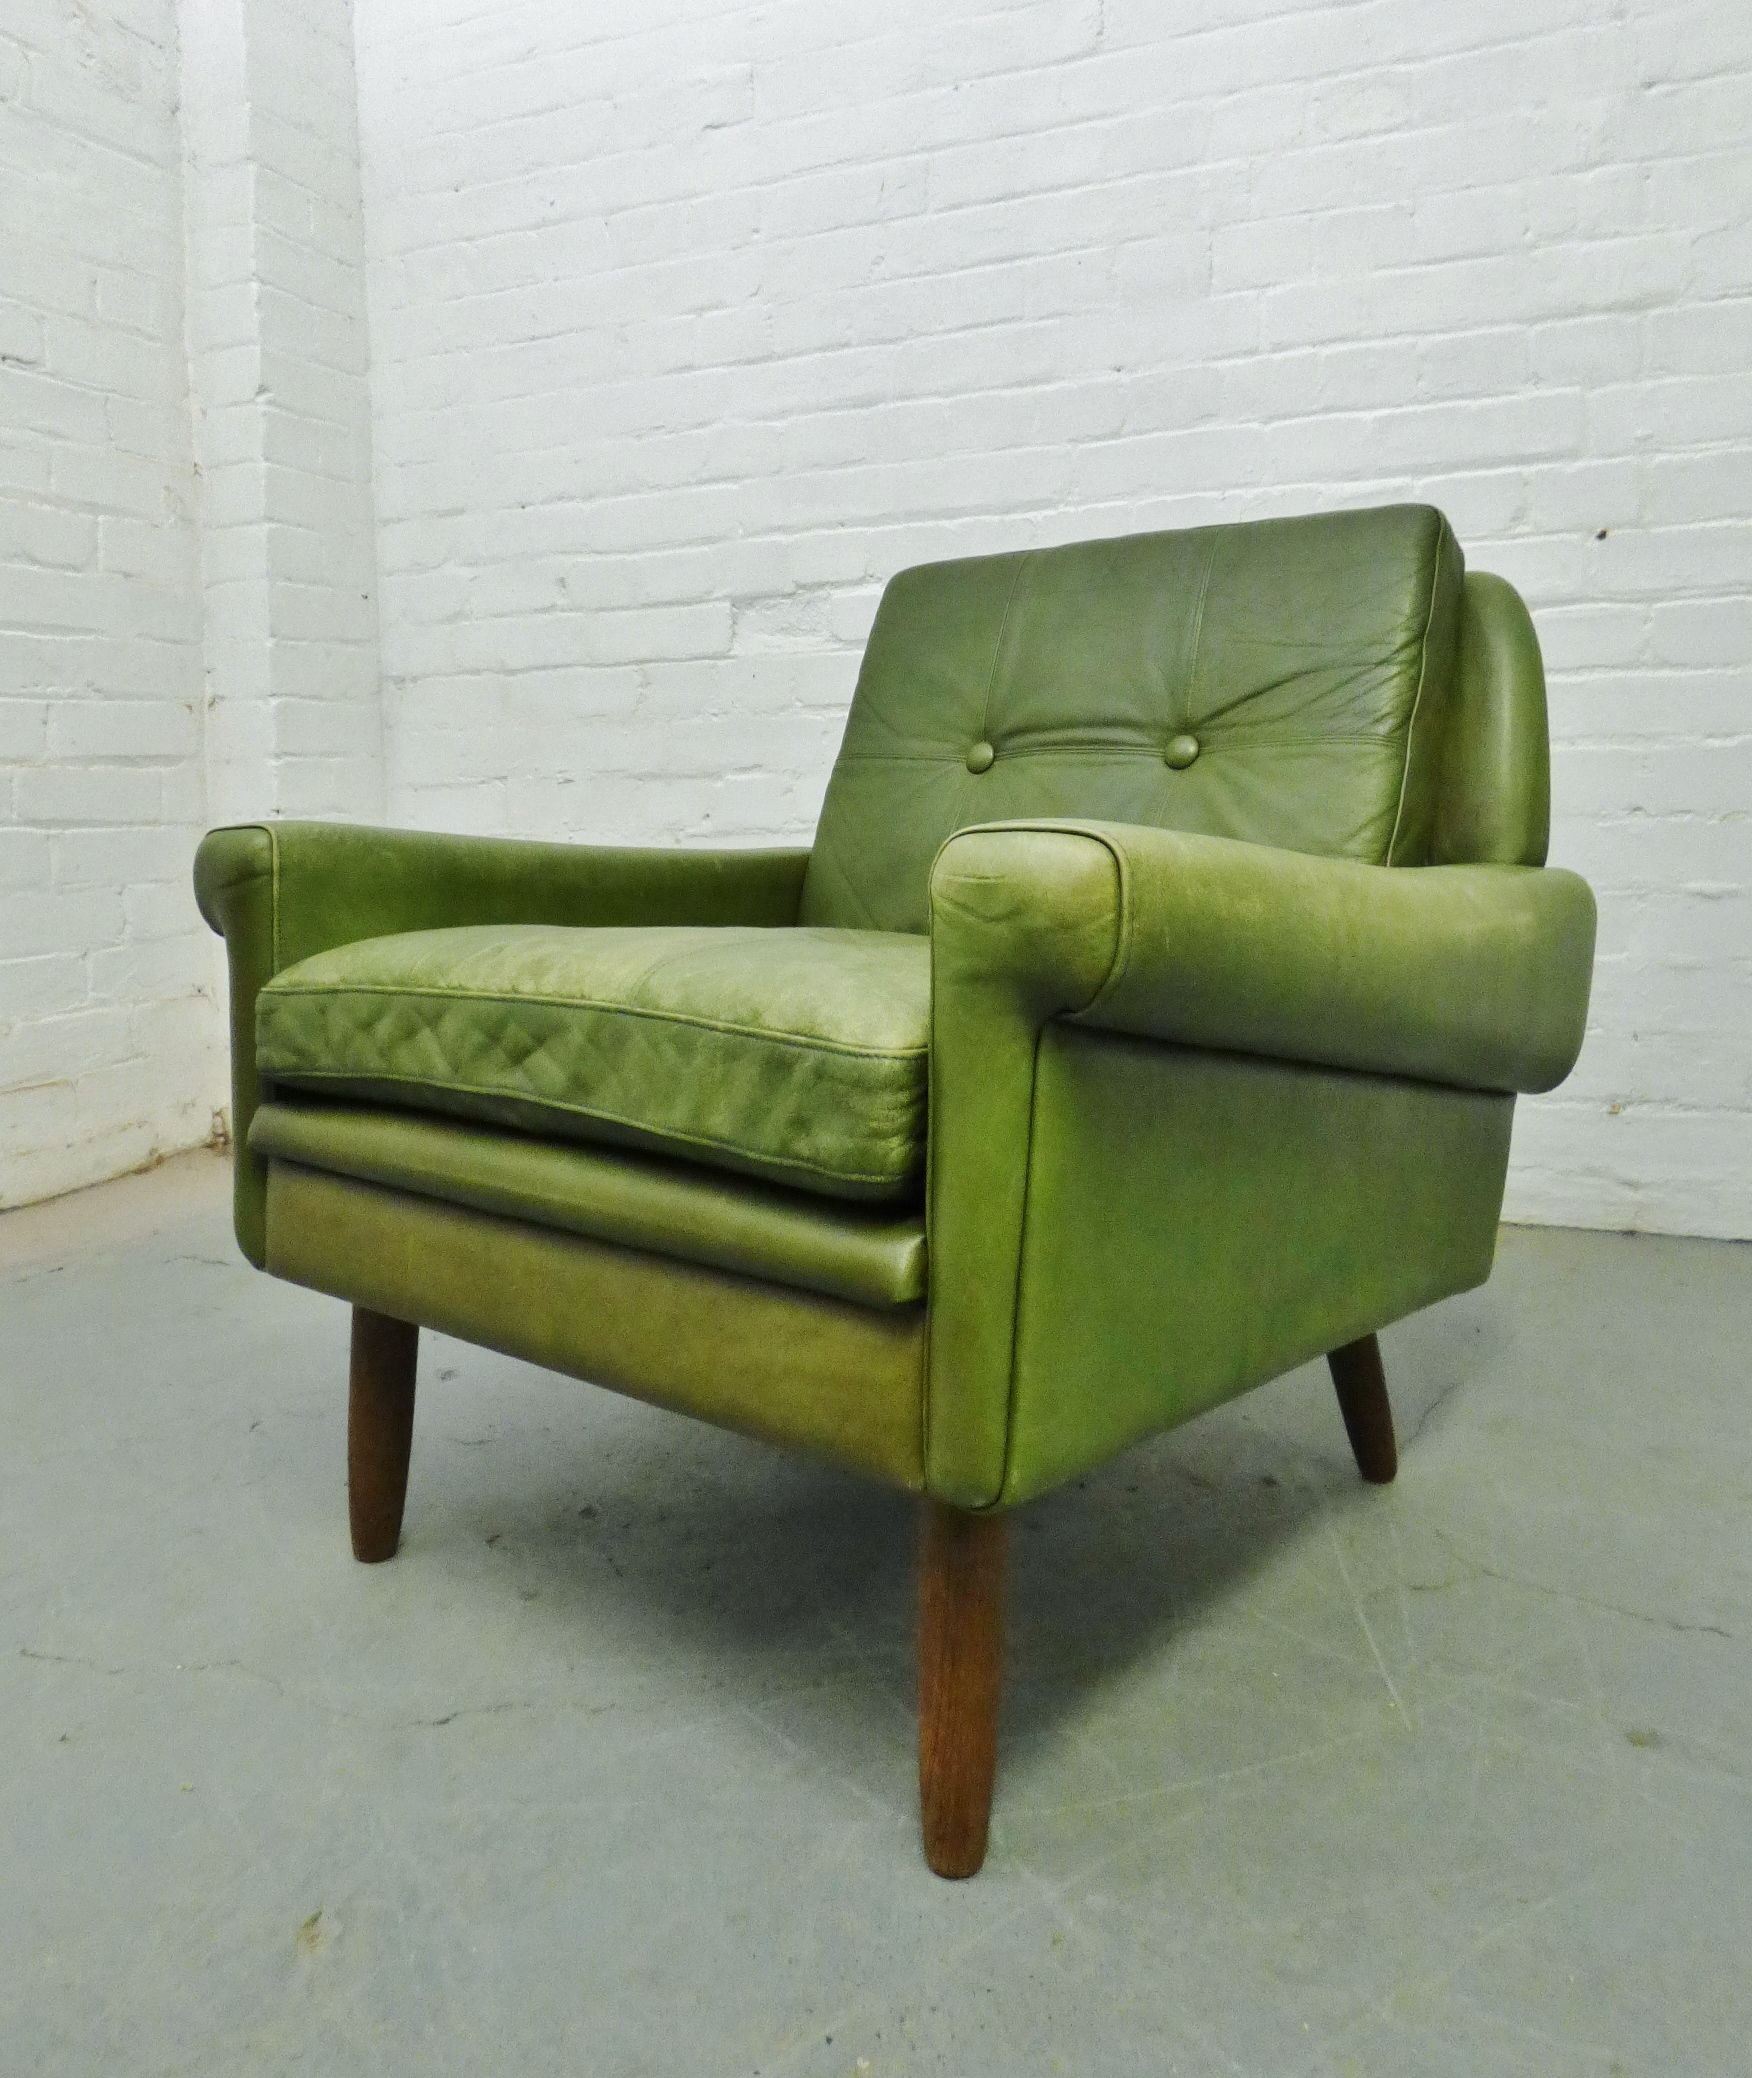 1960s green leather armchair by Skipper Furniture www